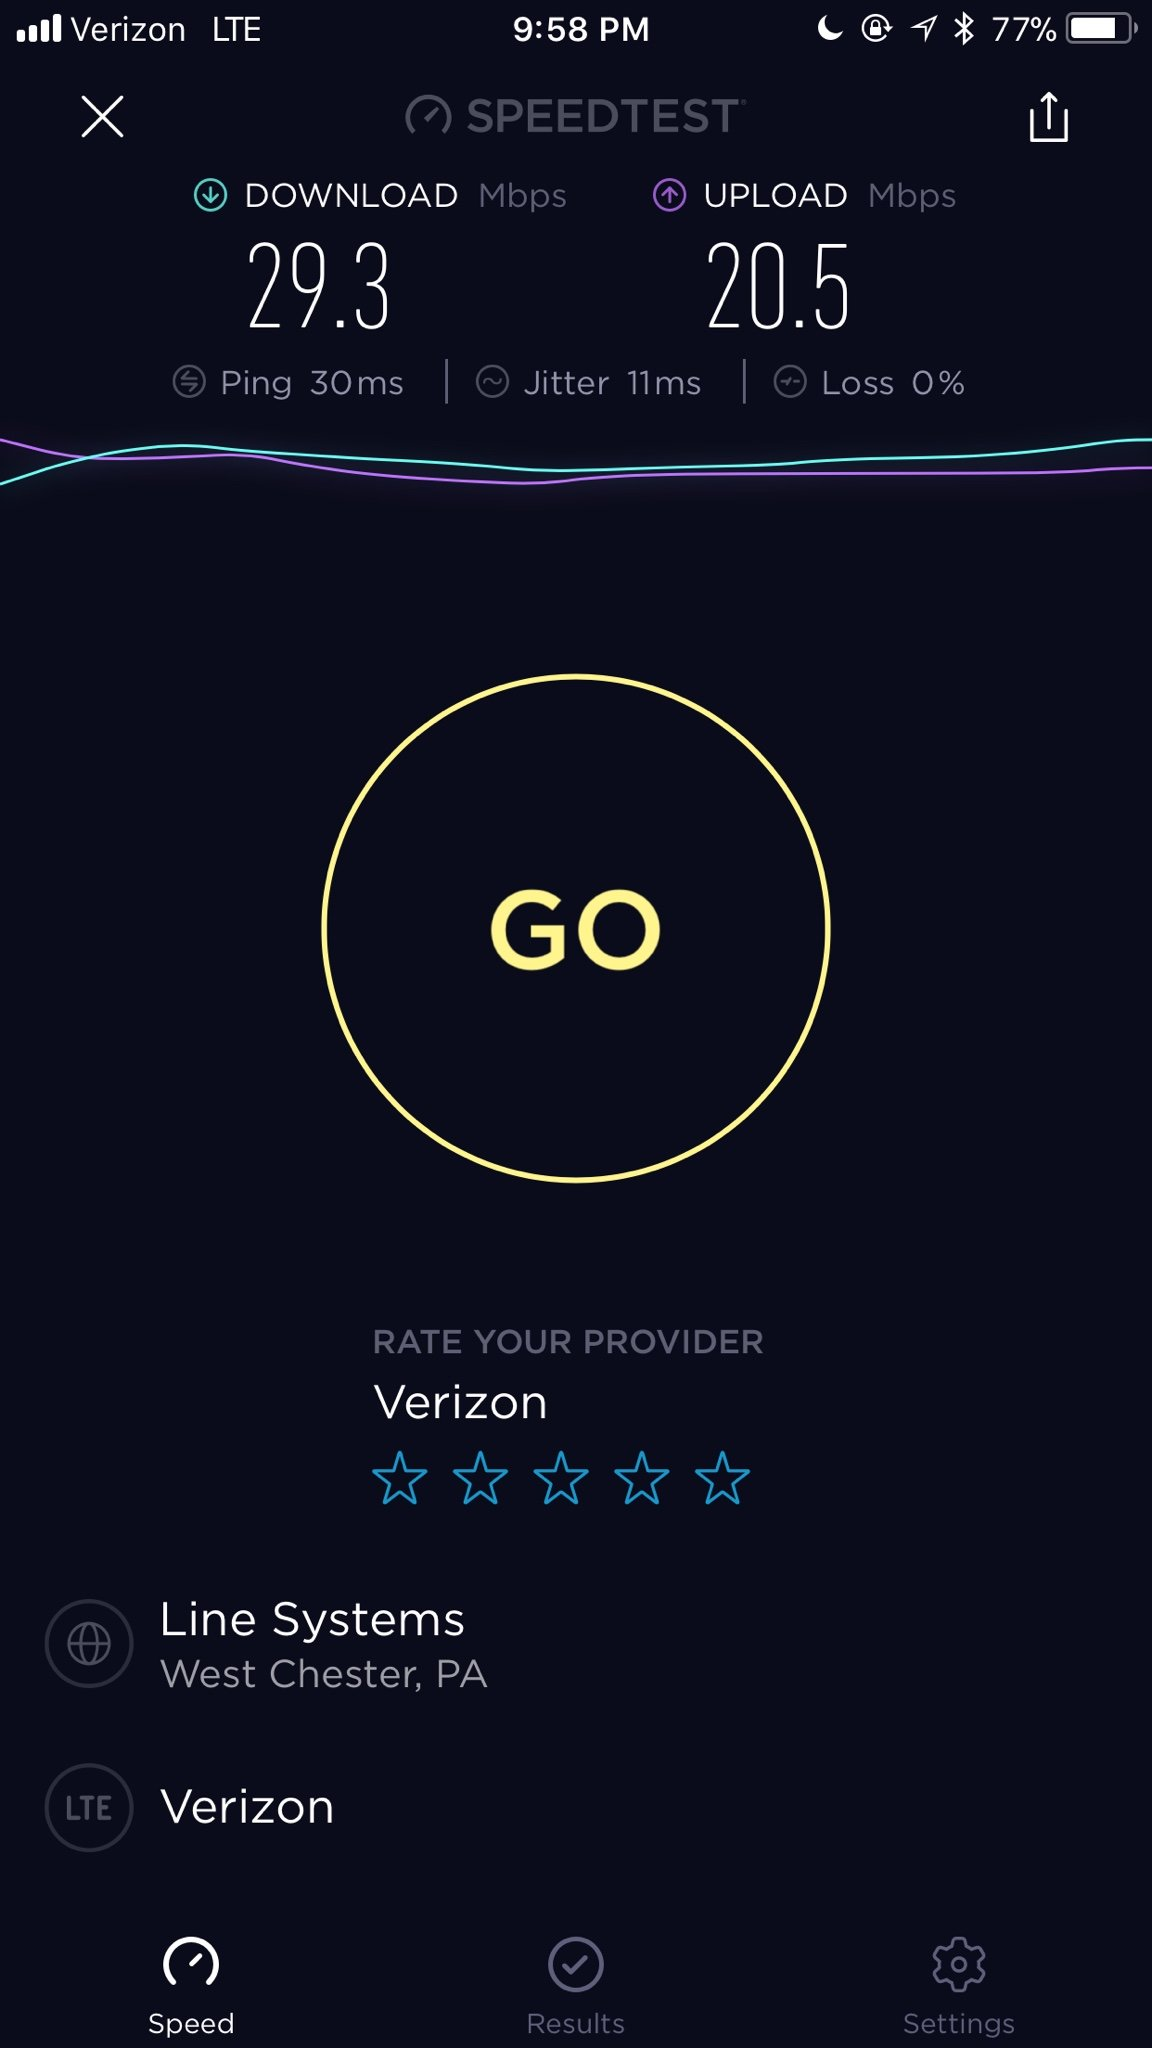 Verizon 4G LTE Speed Test Results: POST EM' HERE! [Archive